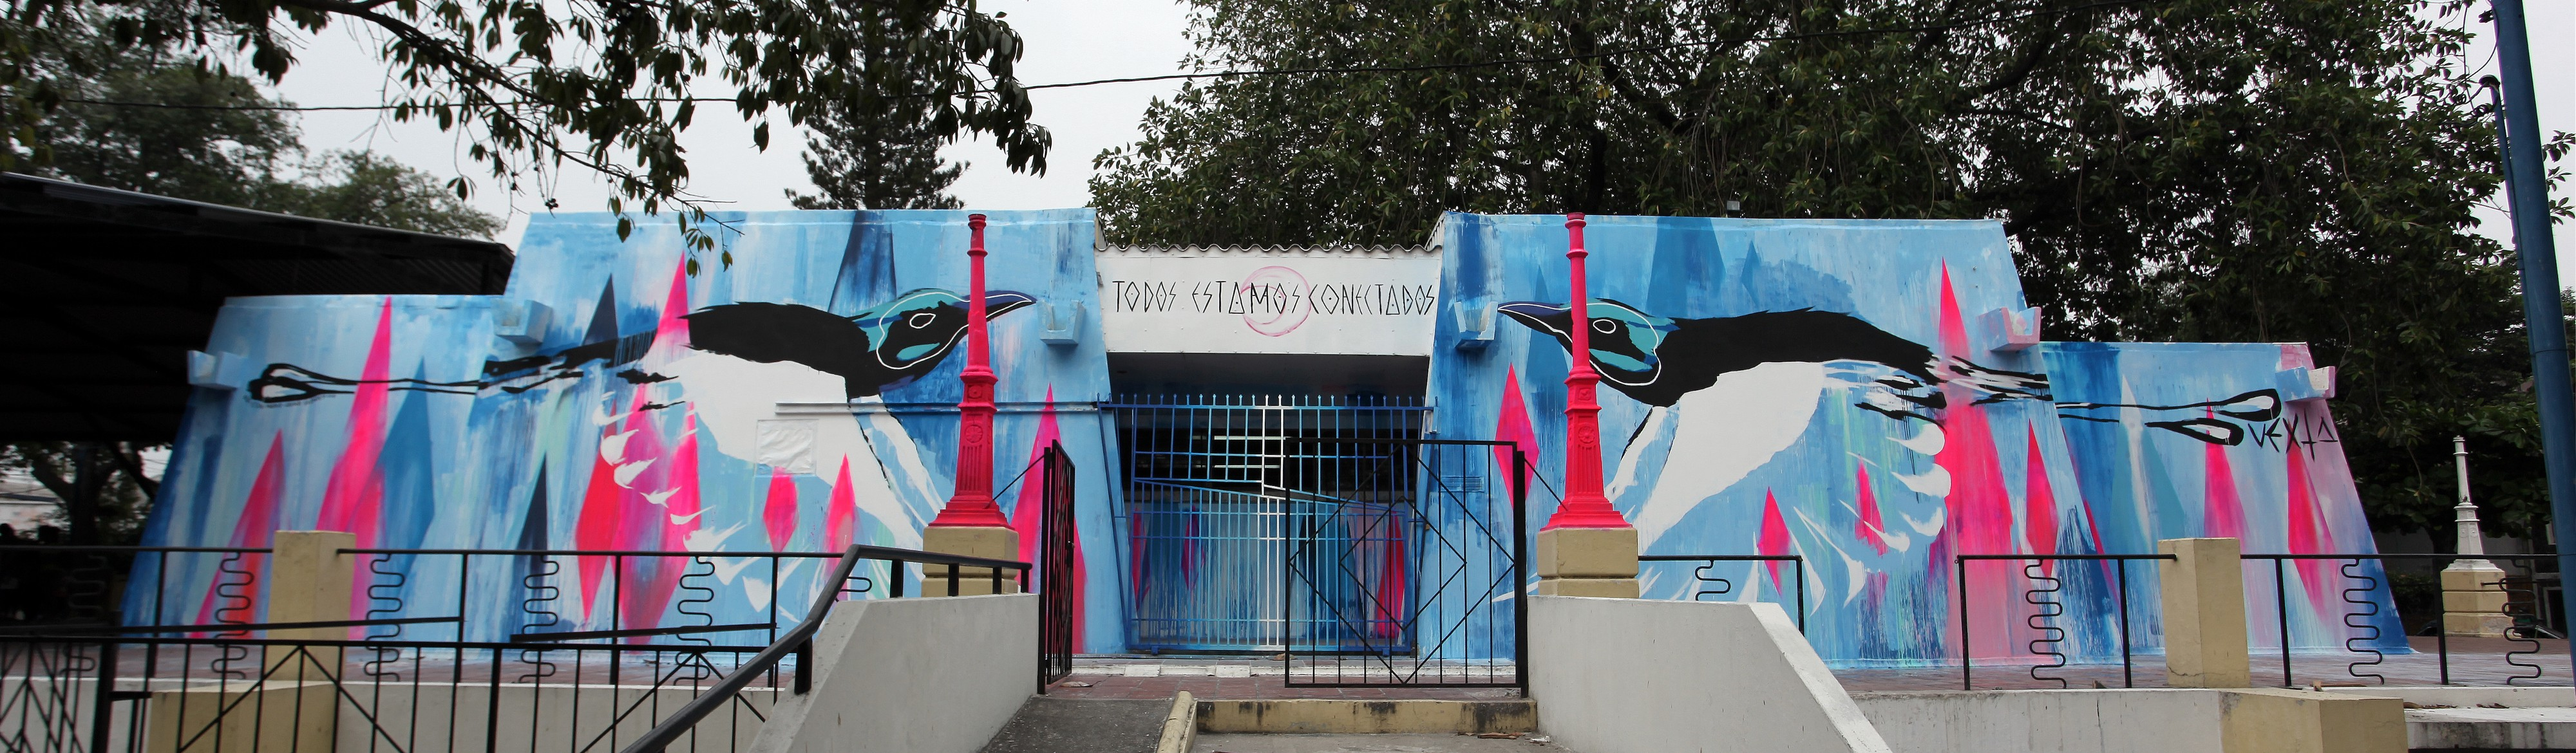 Pupusas and Paint: A Creative Path to Food Security in El Salvador